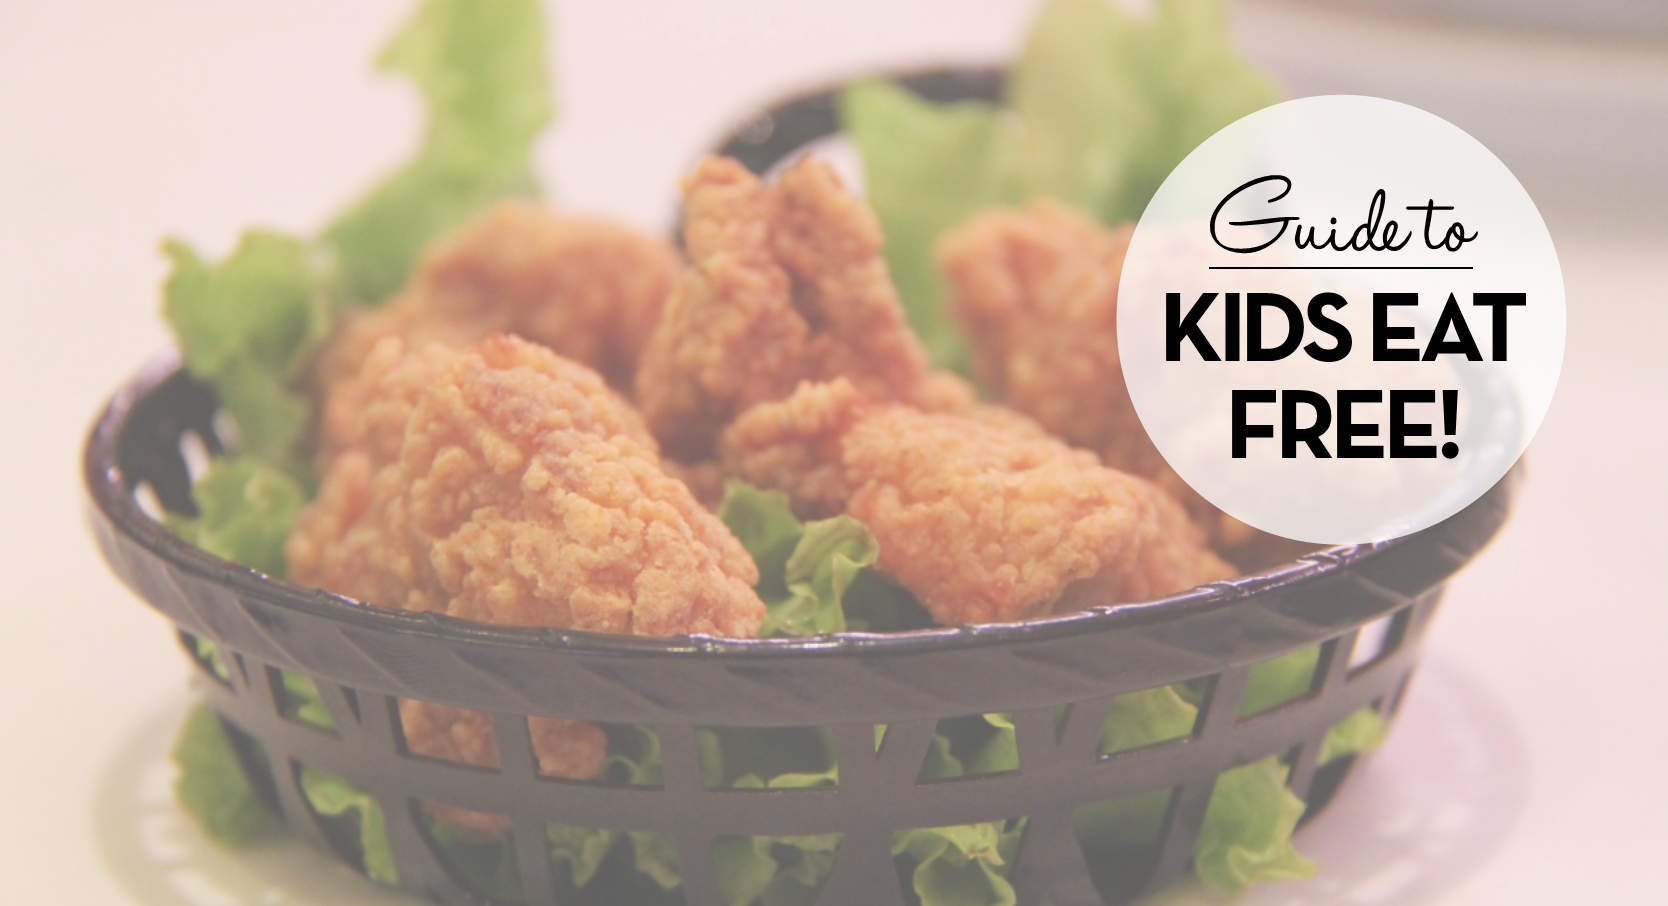 Guide to Kids Eat Free in Knoxville